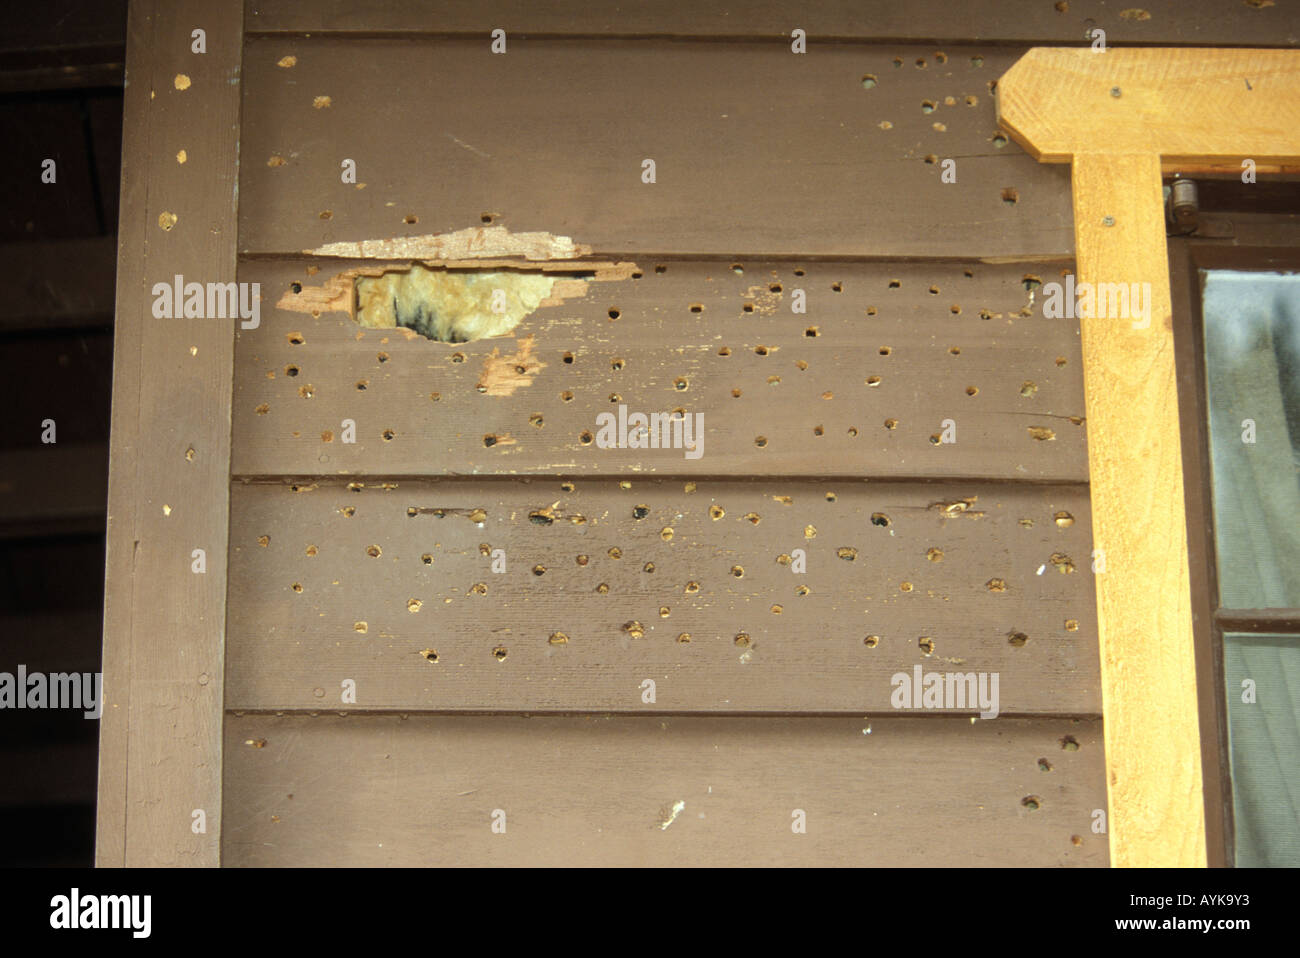 Santa Rita Lodge - Arizona - USA Acorns stored by woodpeckers Damage to the wall caused by squirrels - Stock Image